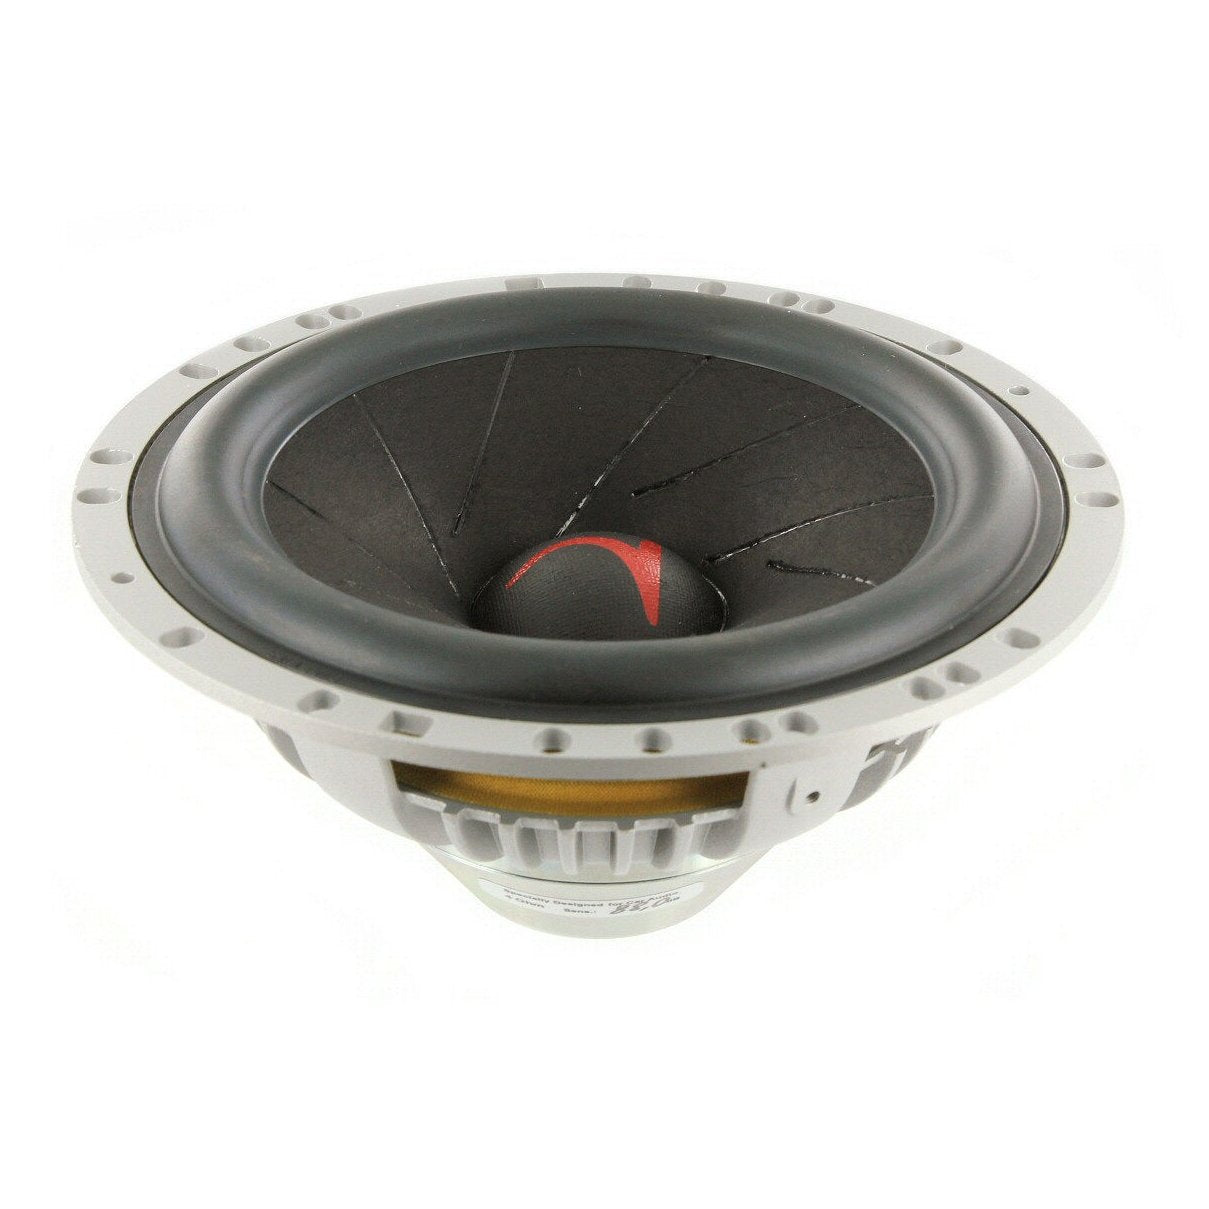 Scanspeak 16W/4531G06 Automotive Woofer - Silver Series - Willys-Hifi Ltd